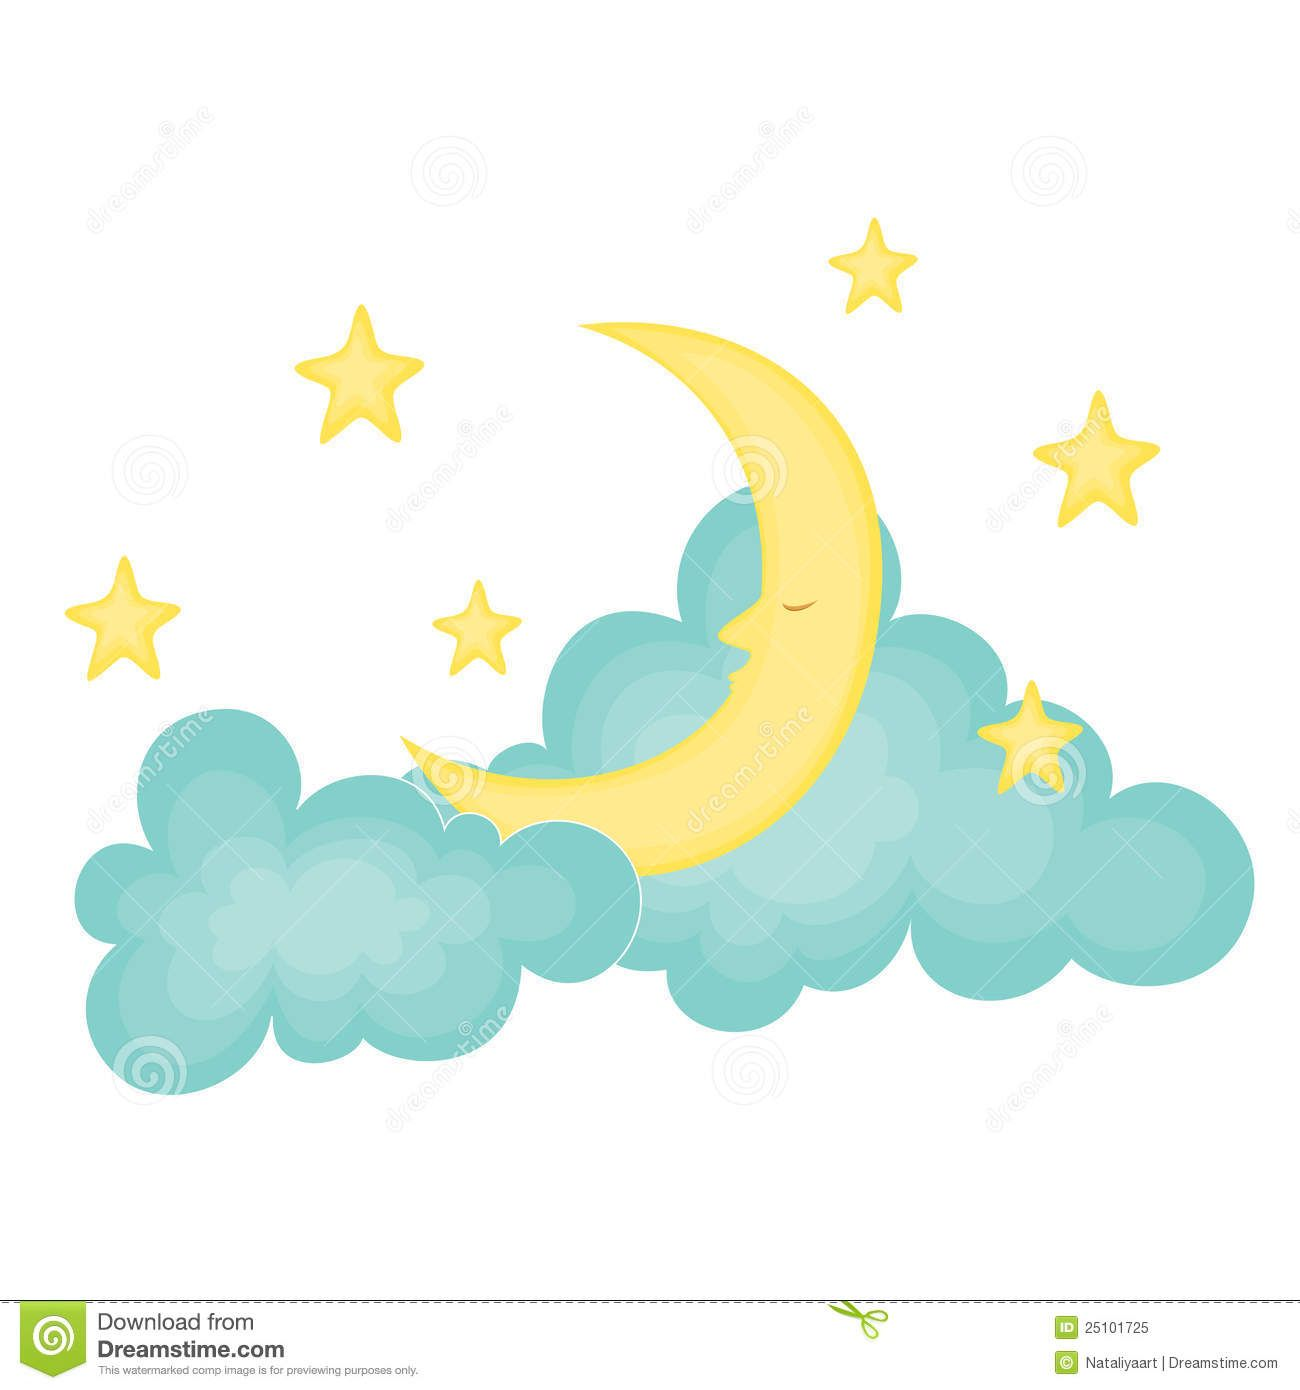 moon and stars clipart clipart kid the moon and stars rh pinterest ie moon and stars clipart png moon and stars clipart png